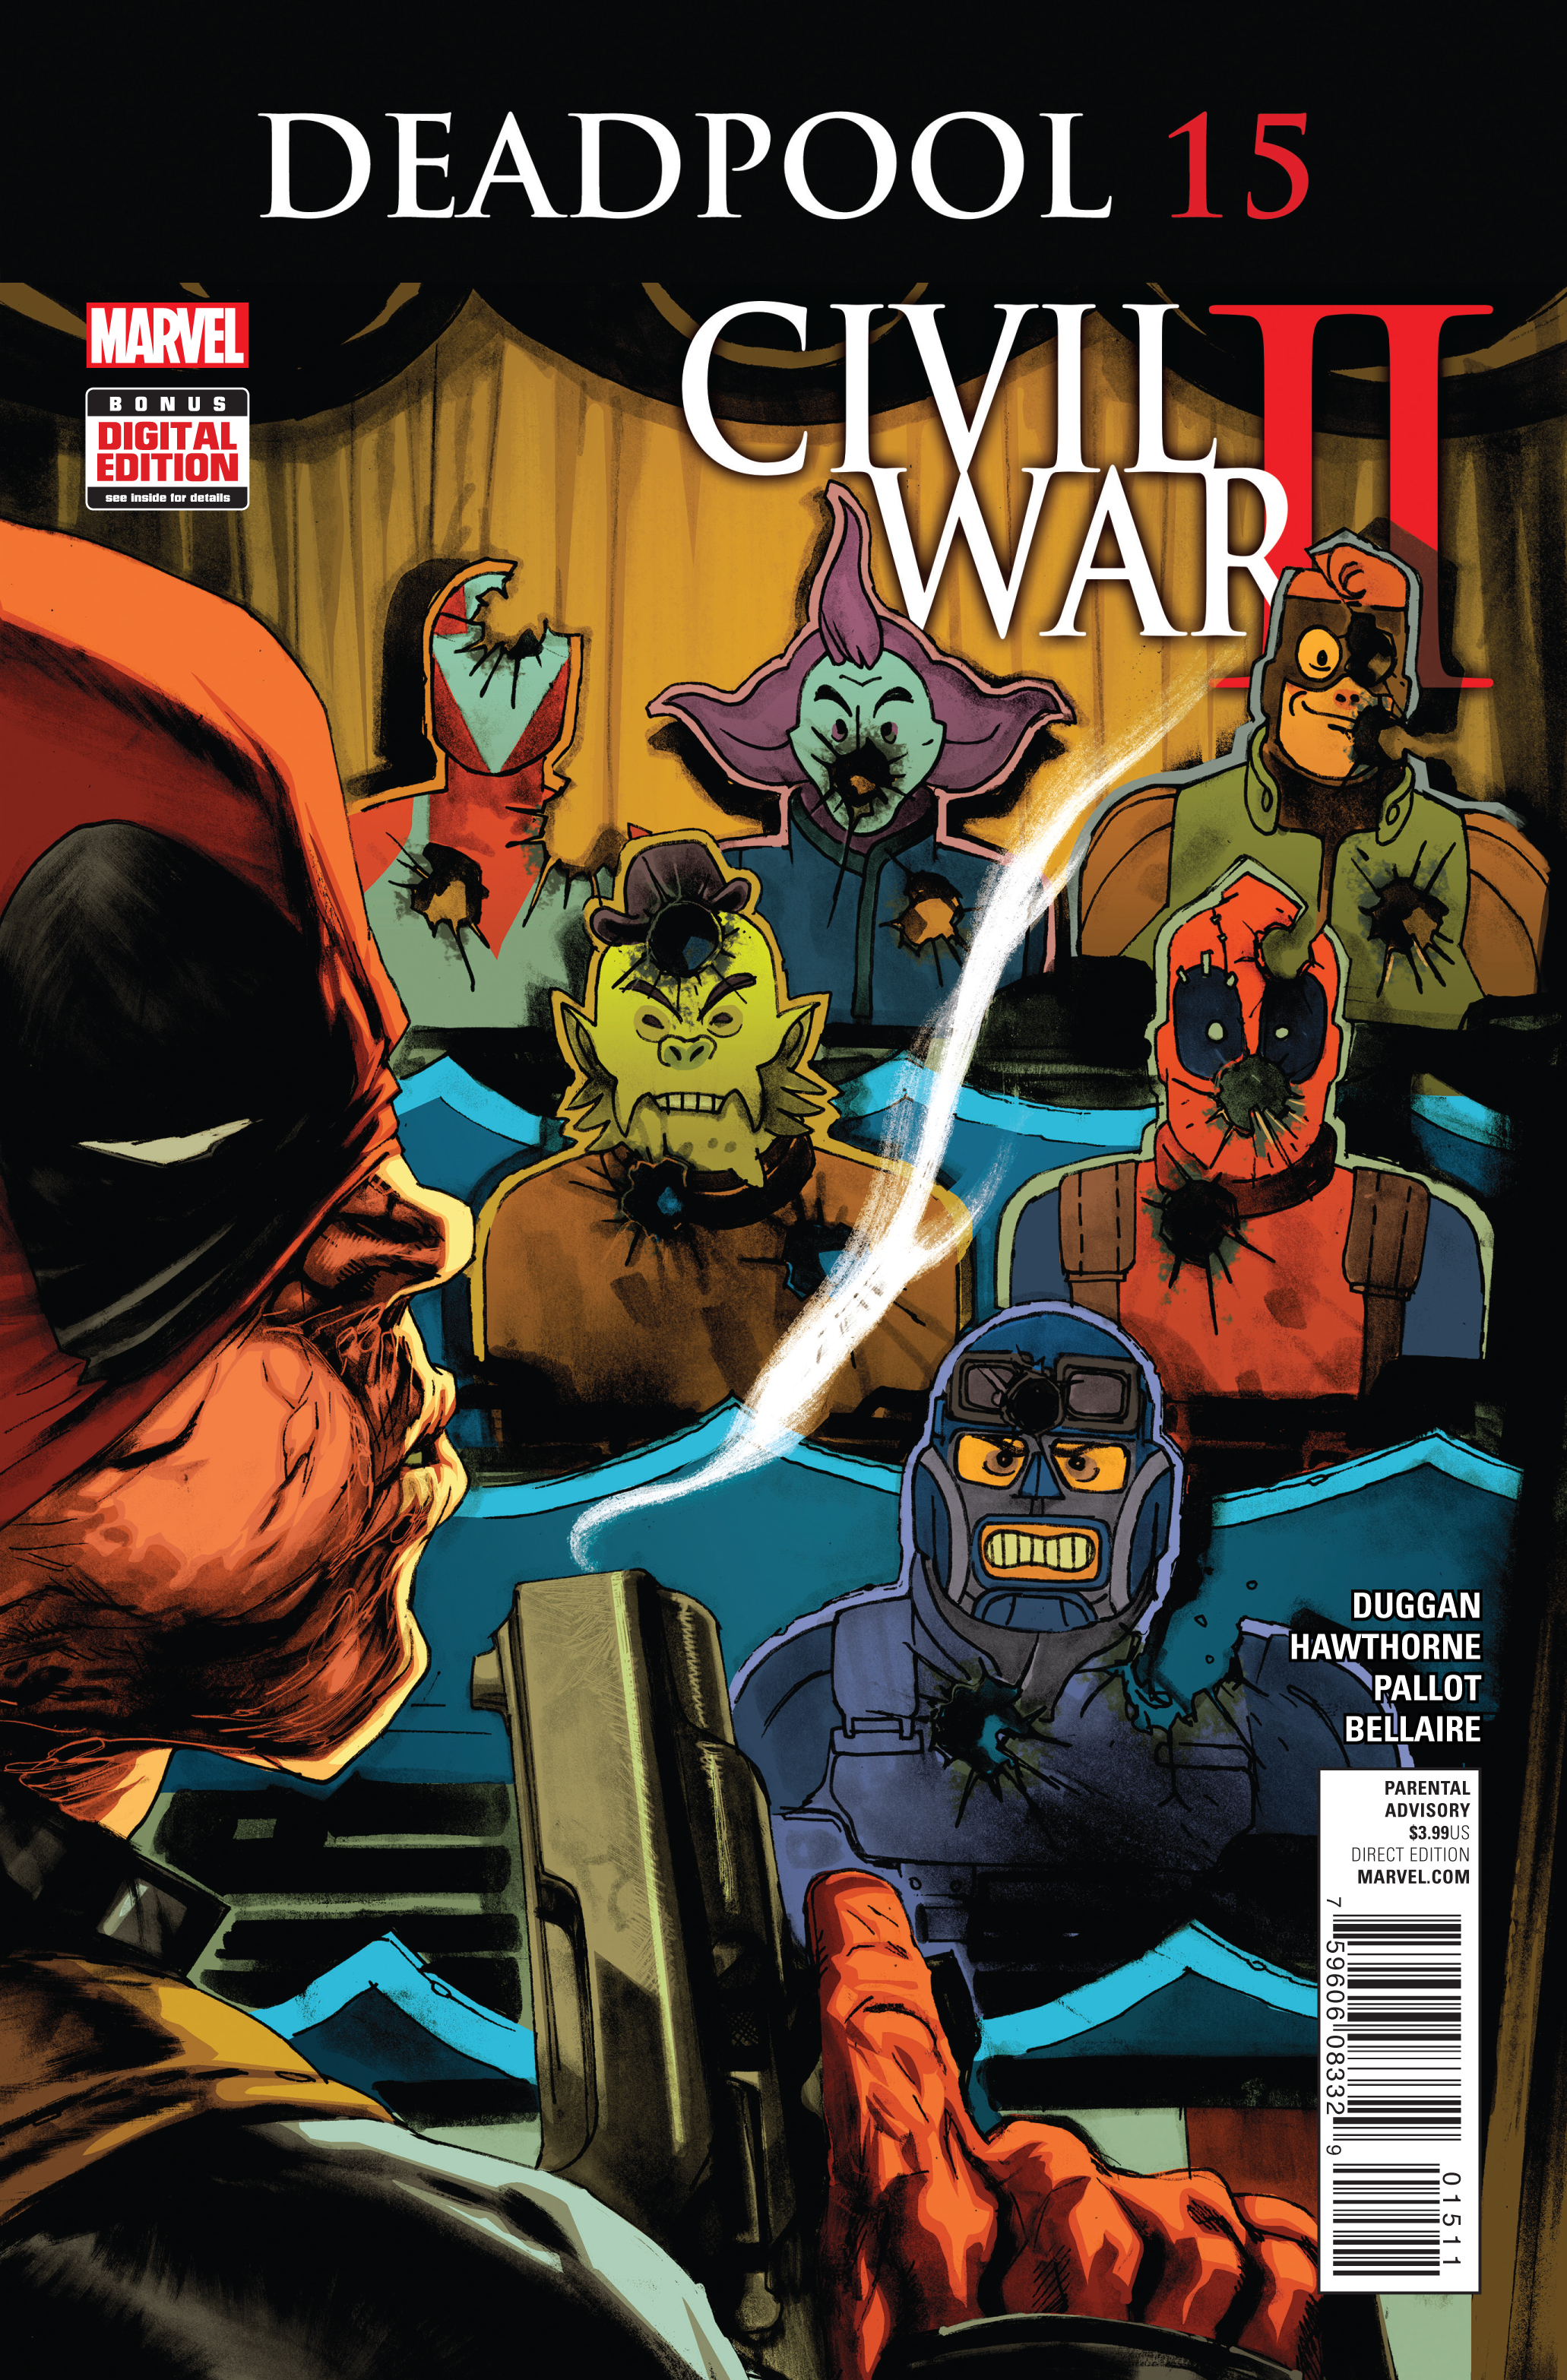 DEADPOOL #15 CW2